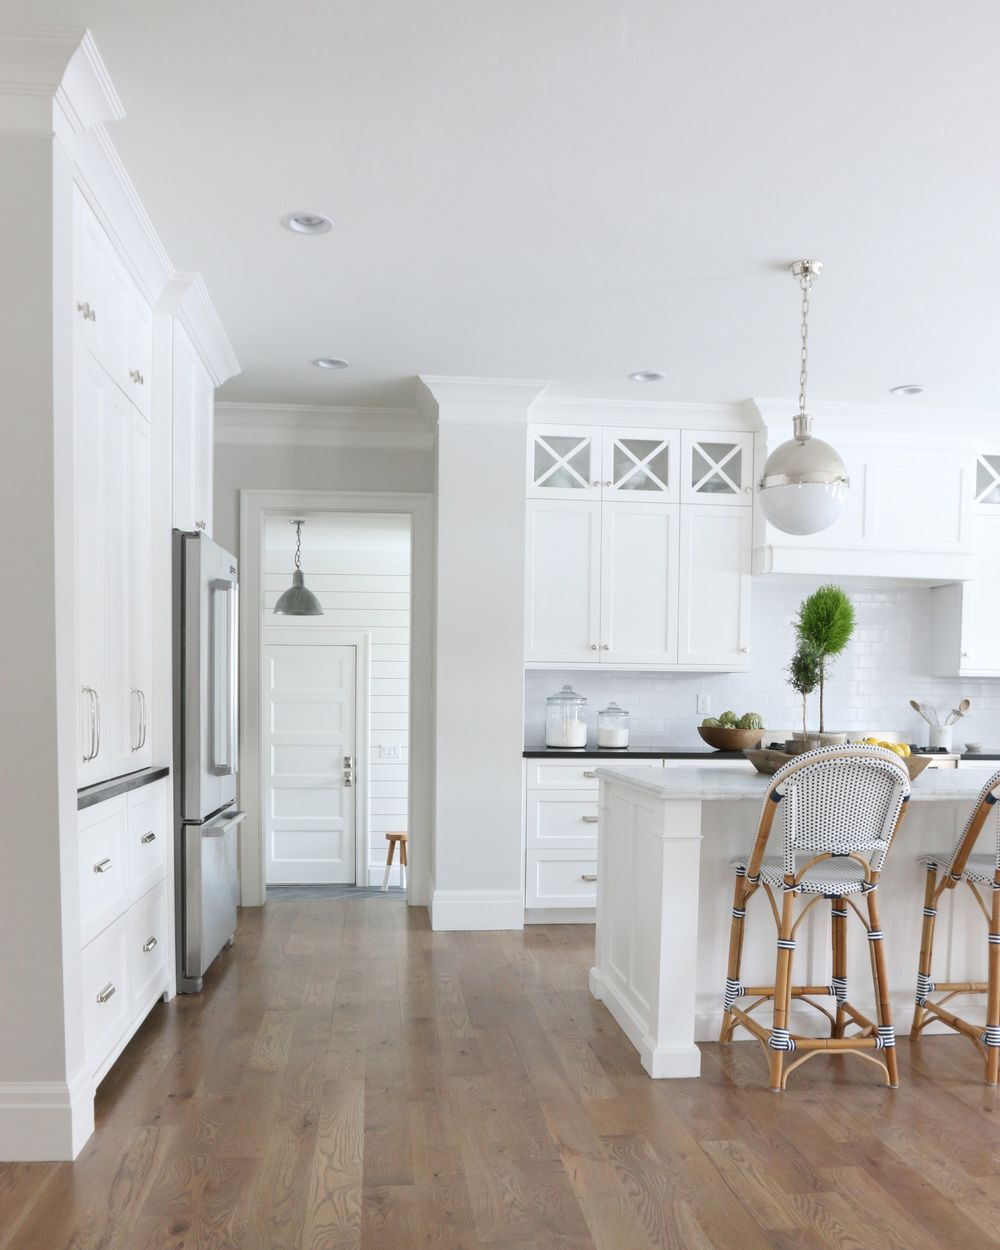 Benjamin Moore Clic Gray Used In A Bright Kitchen Plus 6 Other Great Paint Colors That You Can Use Your Home Image Via Studio Mcgee